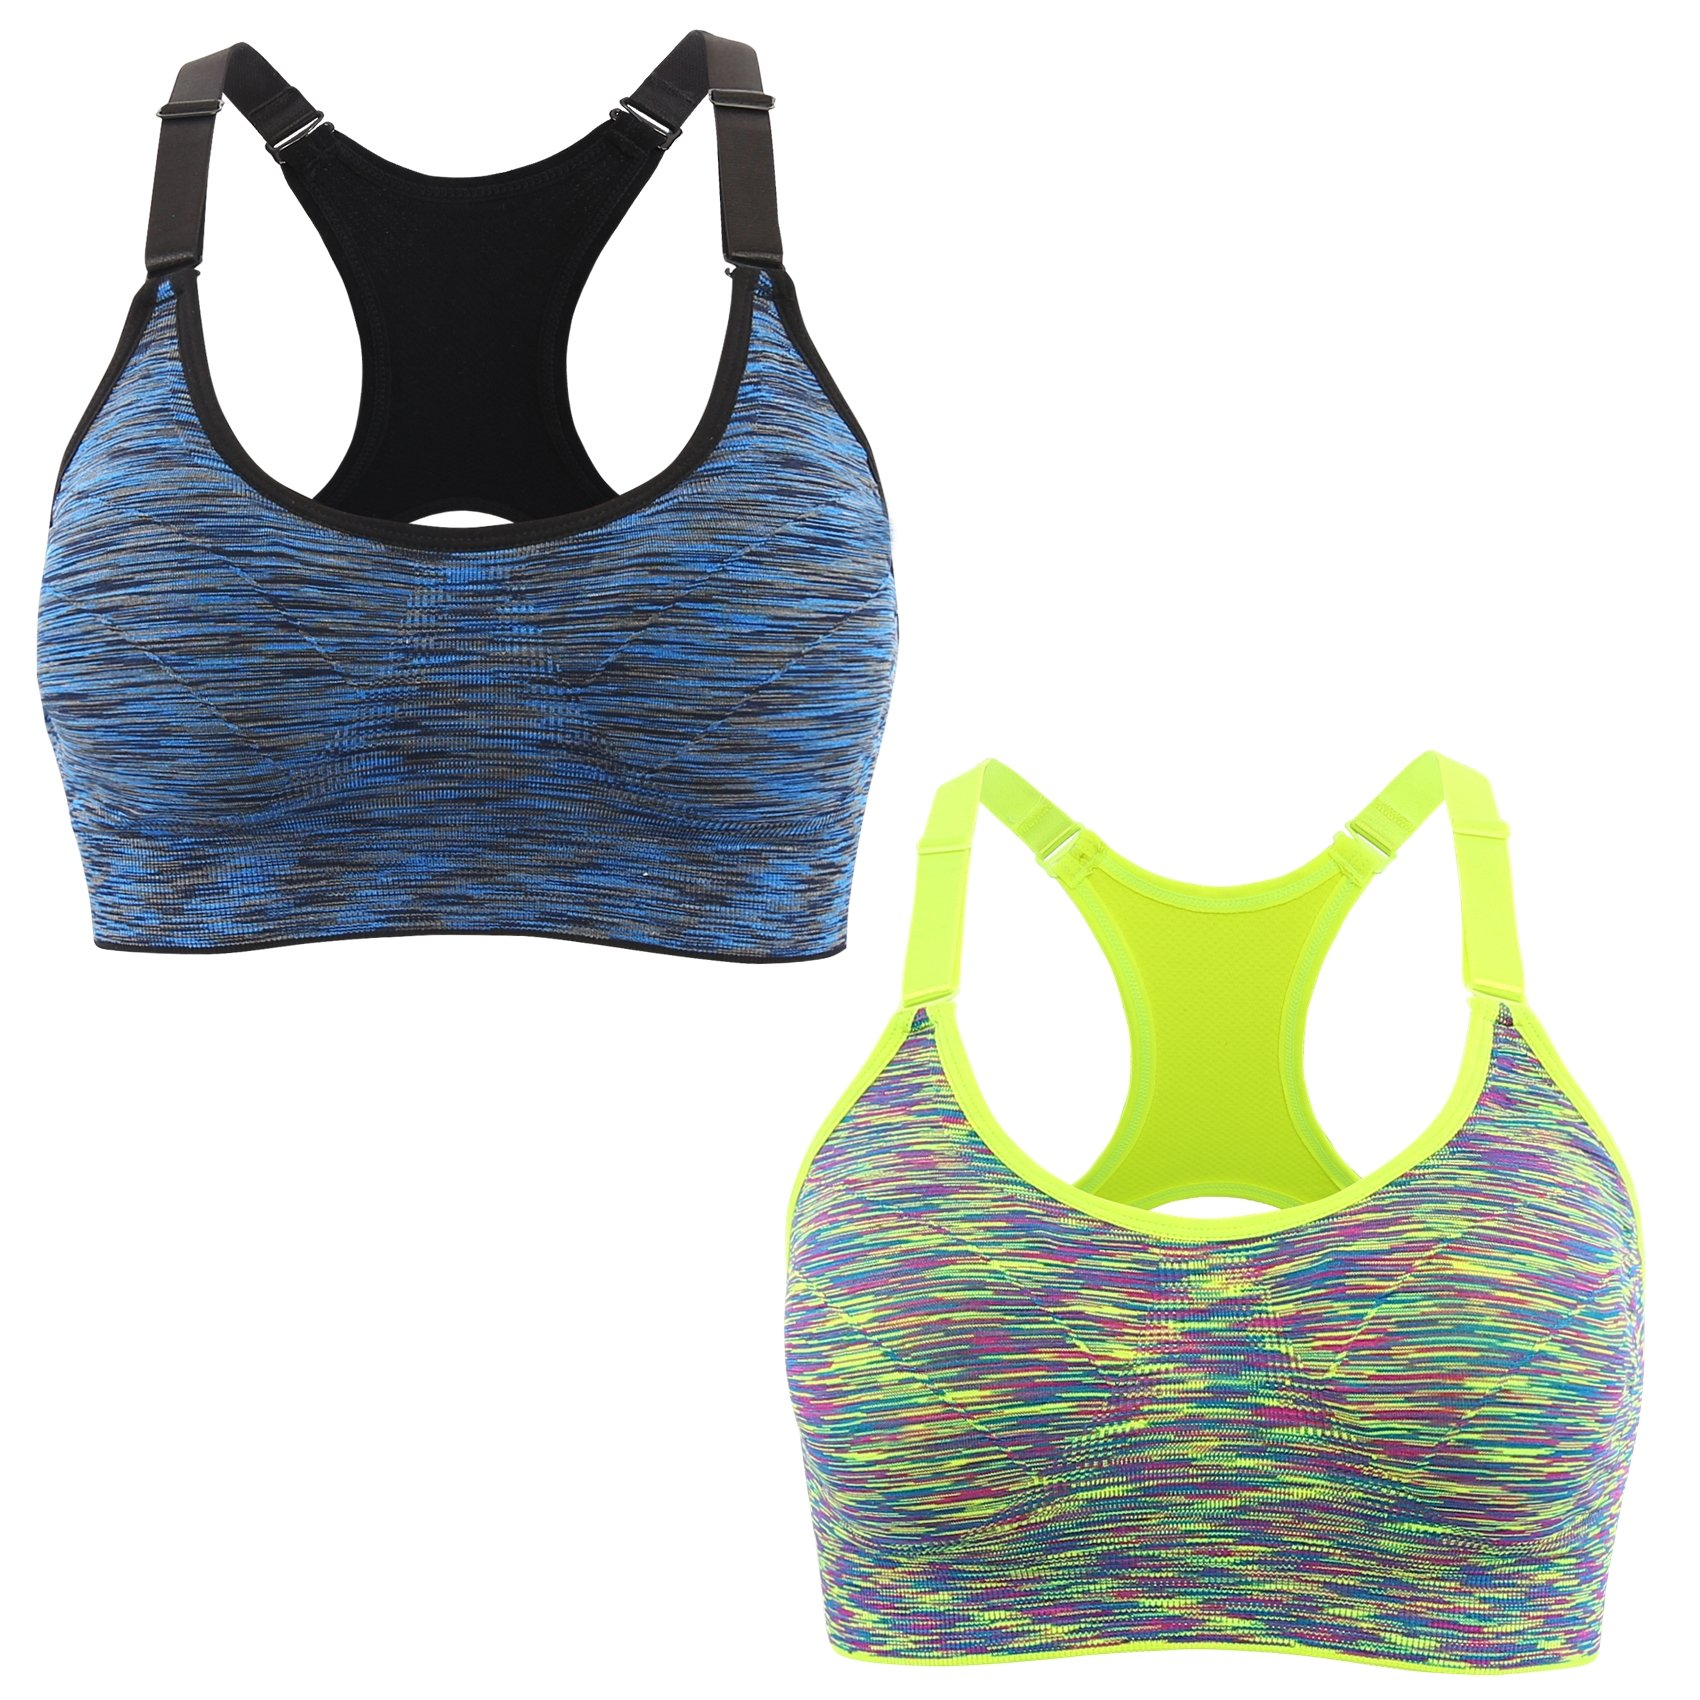 EMY Sports Bra 2 Pack Cami Space Dye Seamless Wirefree Stretchy Removable Pads for Fitness Gym Yoga Running (S, 2 Pack-BL) by EMY